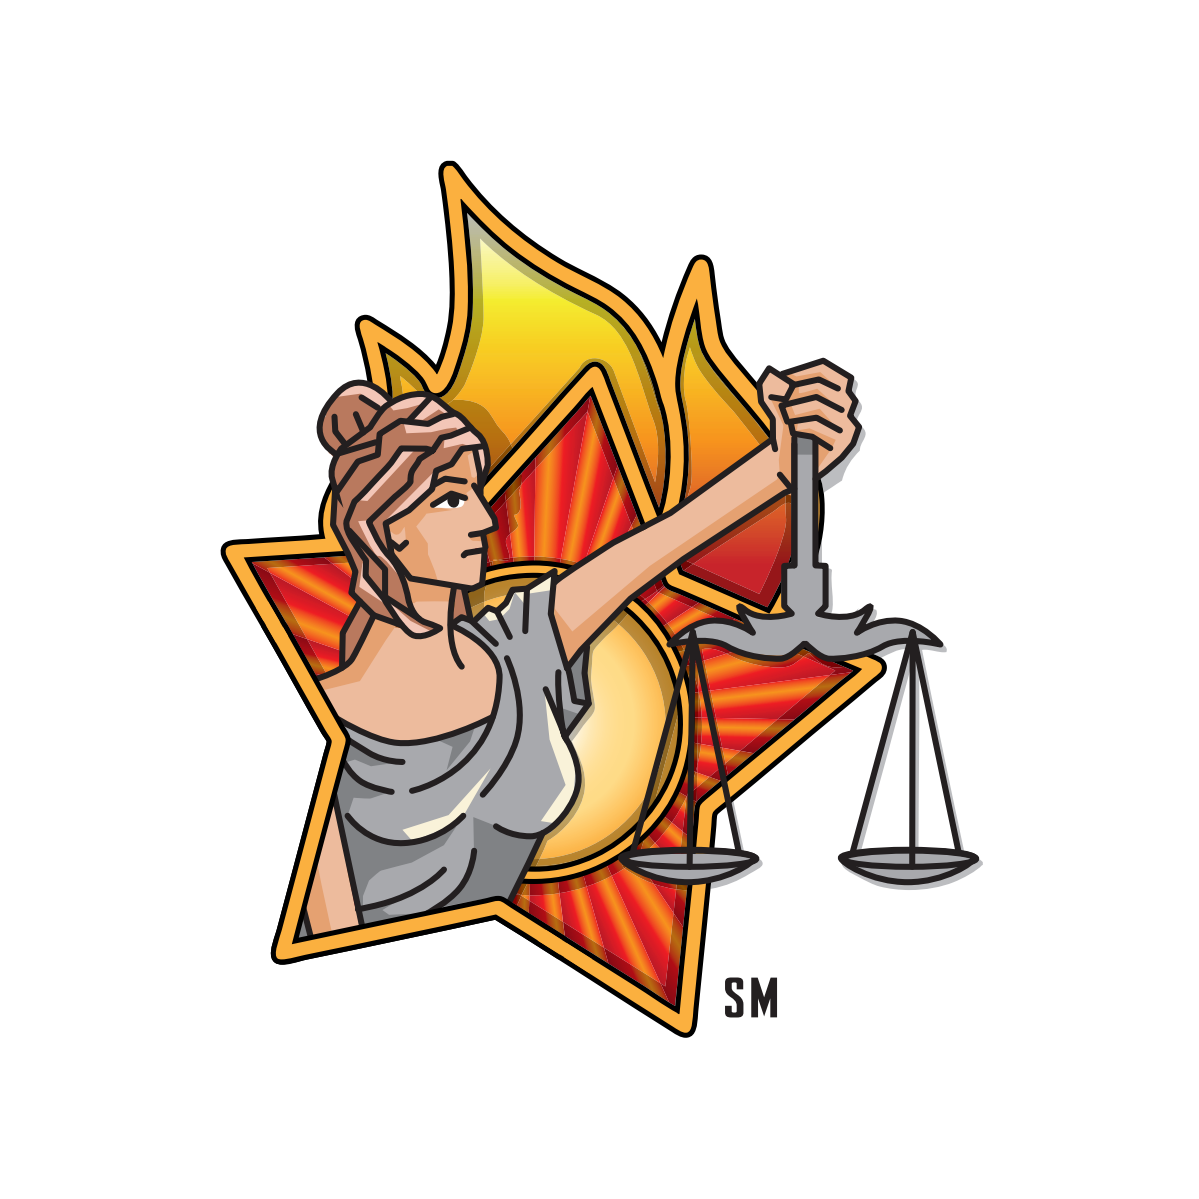 Looking for a fun logo for a new law firm